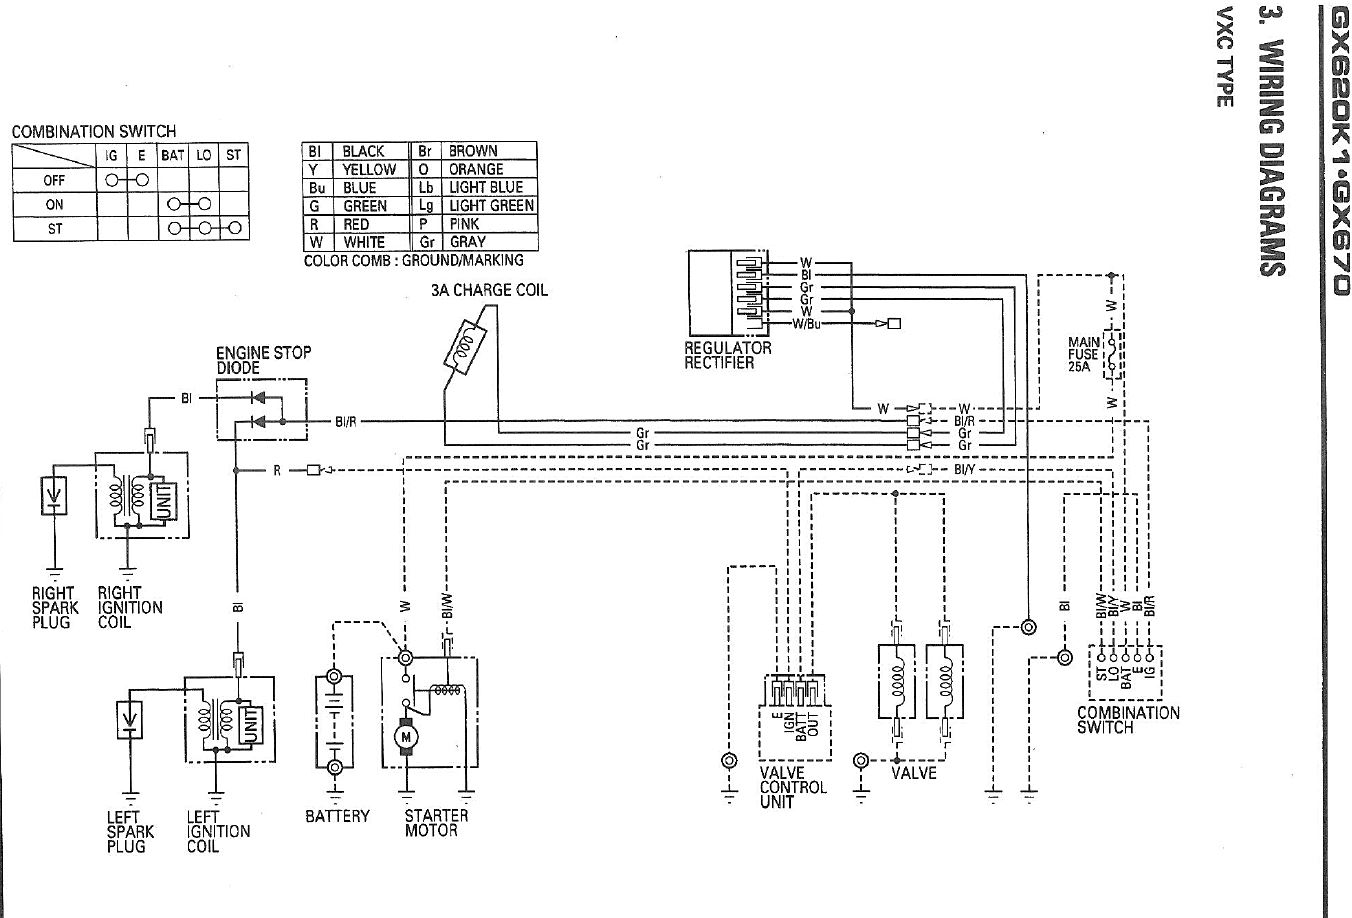 powerhorse engine wiring diagram with 7vmf0 Hi Hank You Seem Onan Wizard Here I on 7vmf0 Hi Hank You Seem Onan Wizard Here I likewise Mf 35 Tractor Wiring Diagram together with Famous Onan Generator Wiring Diagram moreover Pressure Washer Parts Diagram further 7hdfe Truck Will Not Shut Off Key Even Unplugged Ignition Switch.